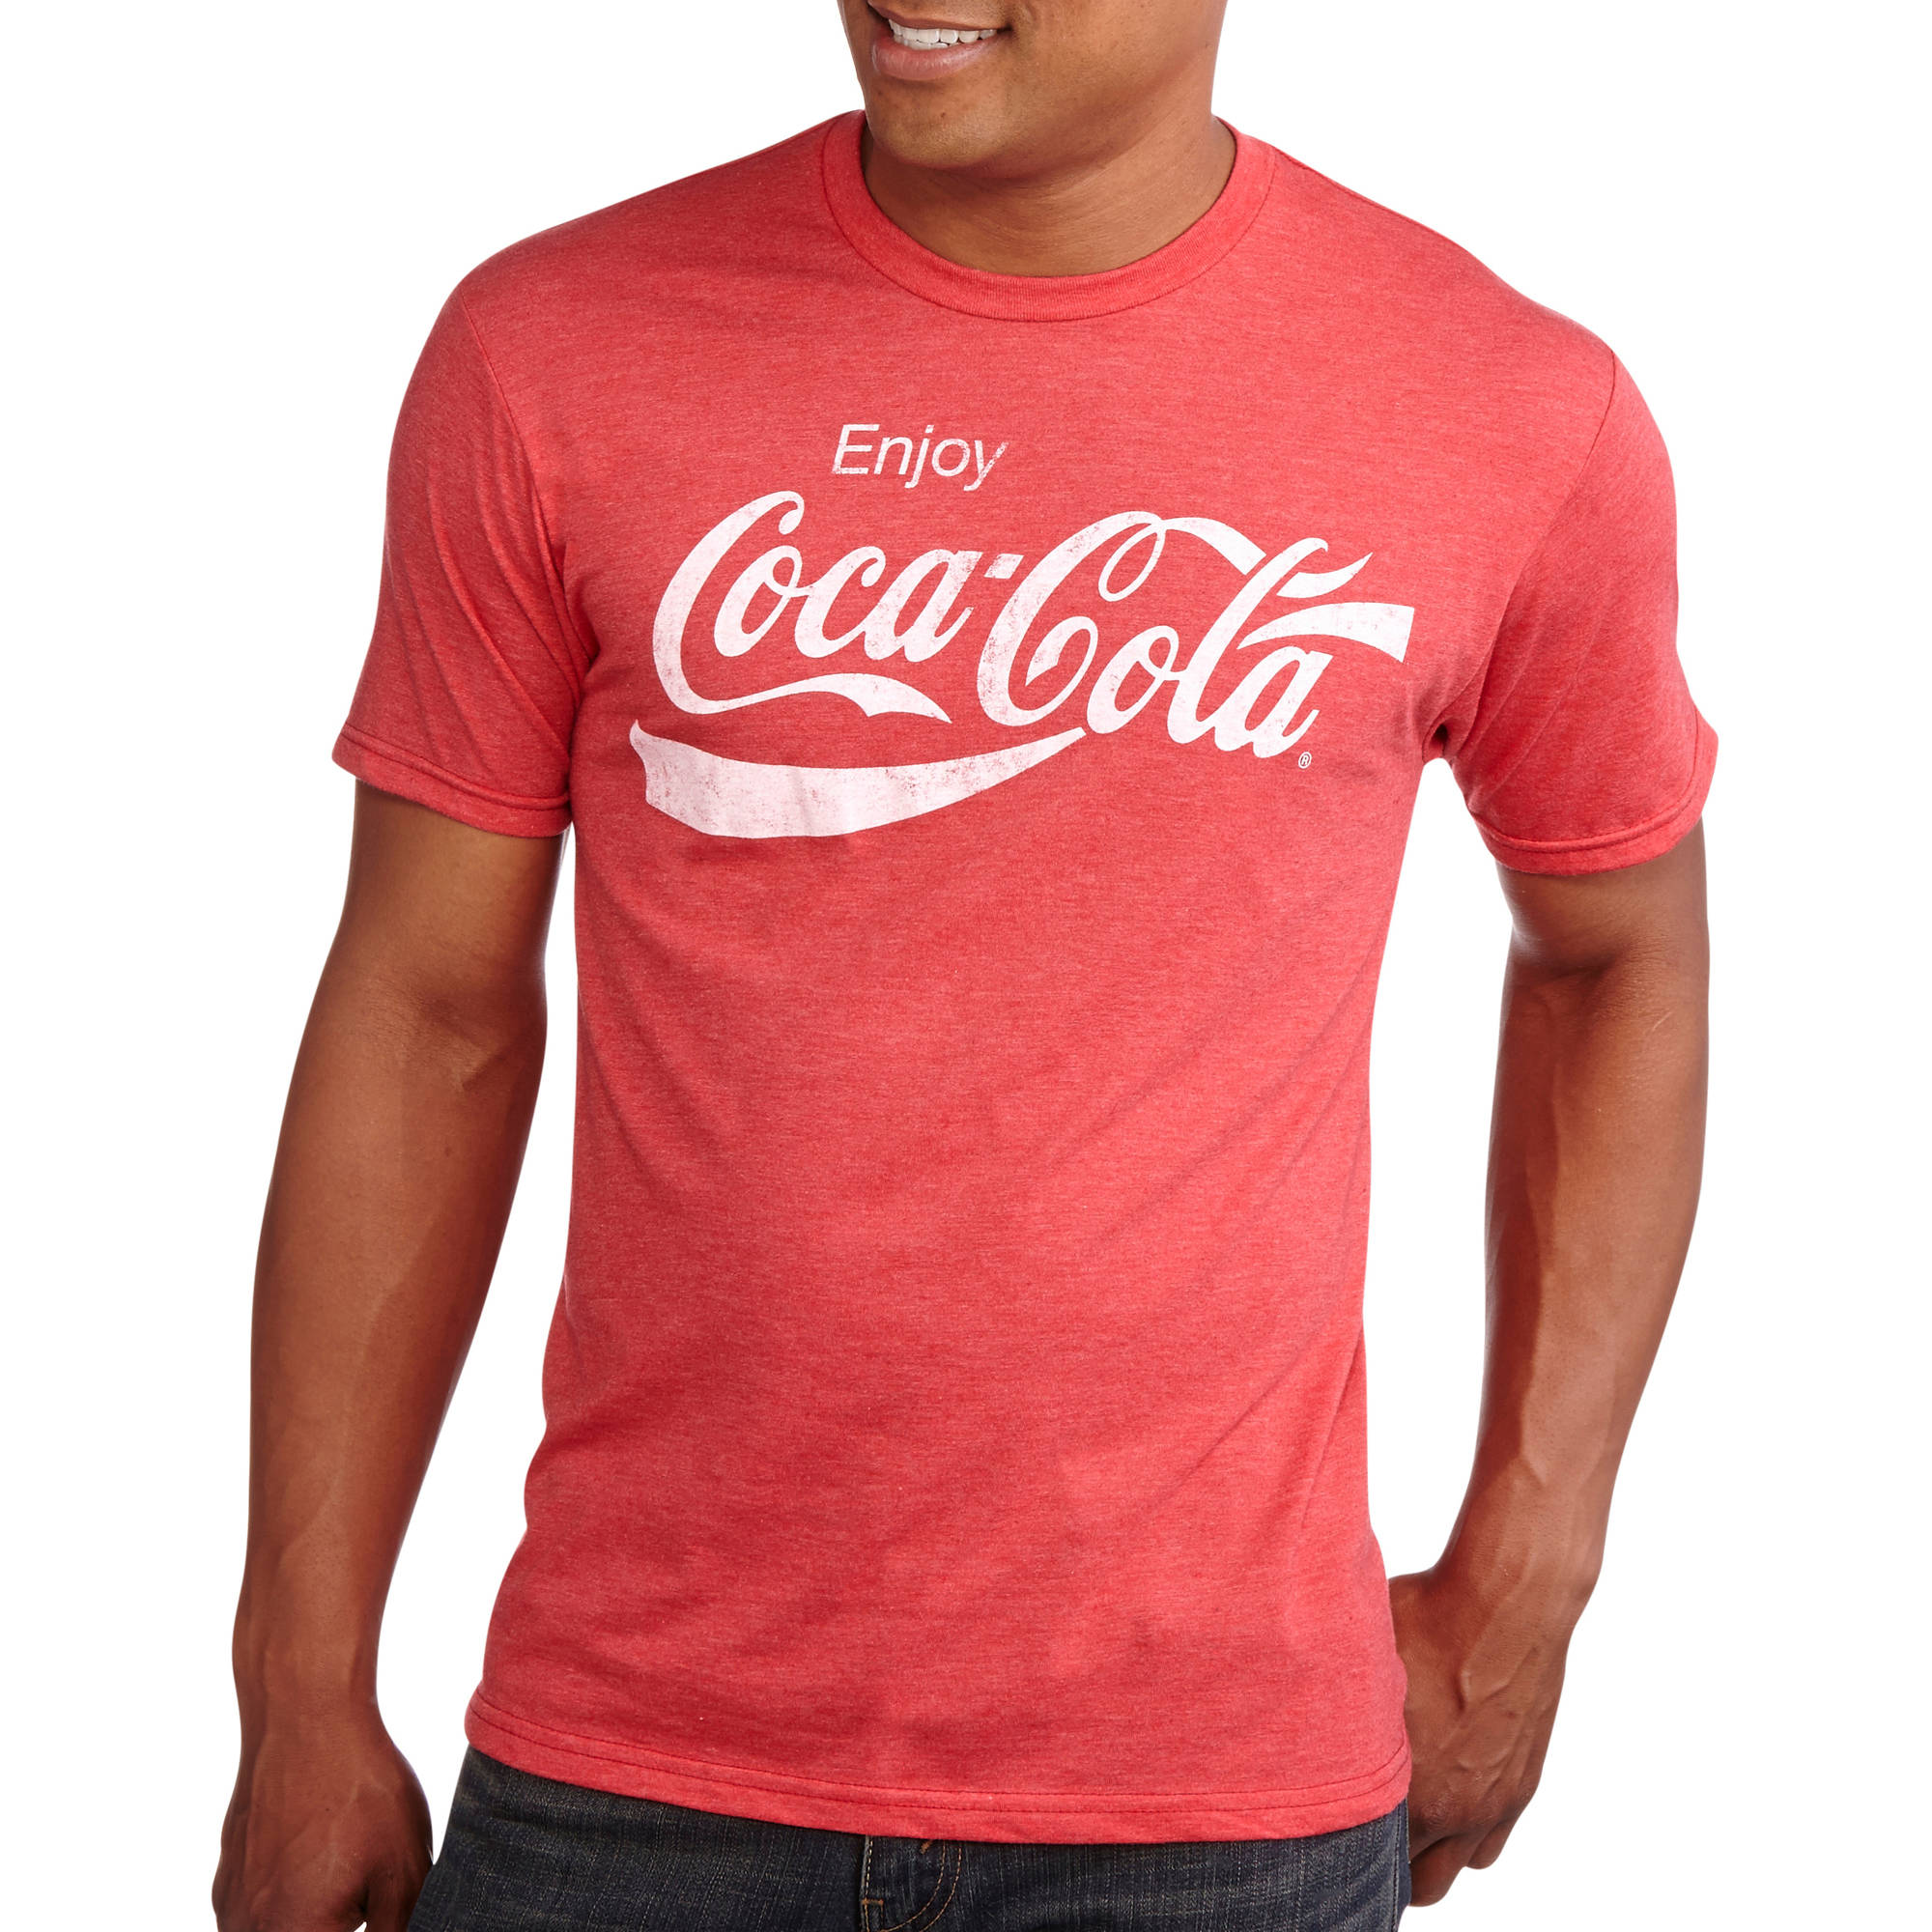 a22716330247c Food   Beverage - Coca Cola Men s Graphic Tee - Walmart.com